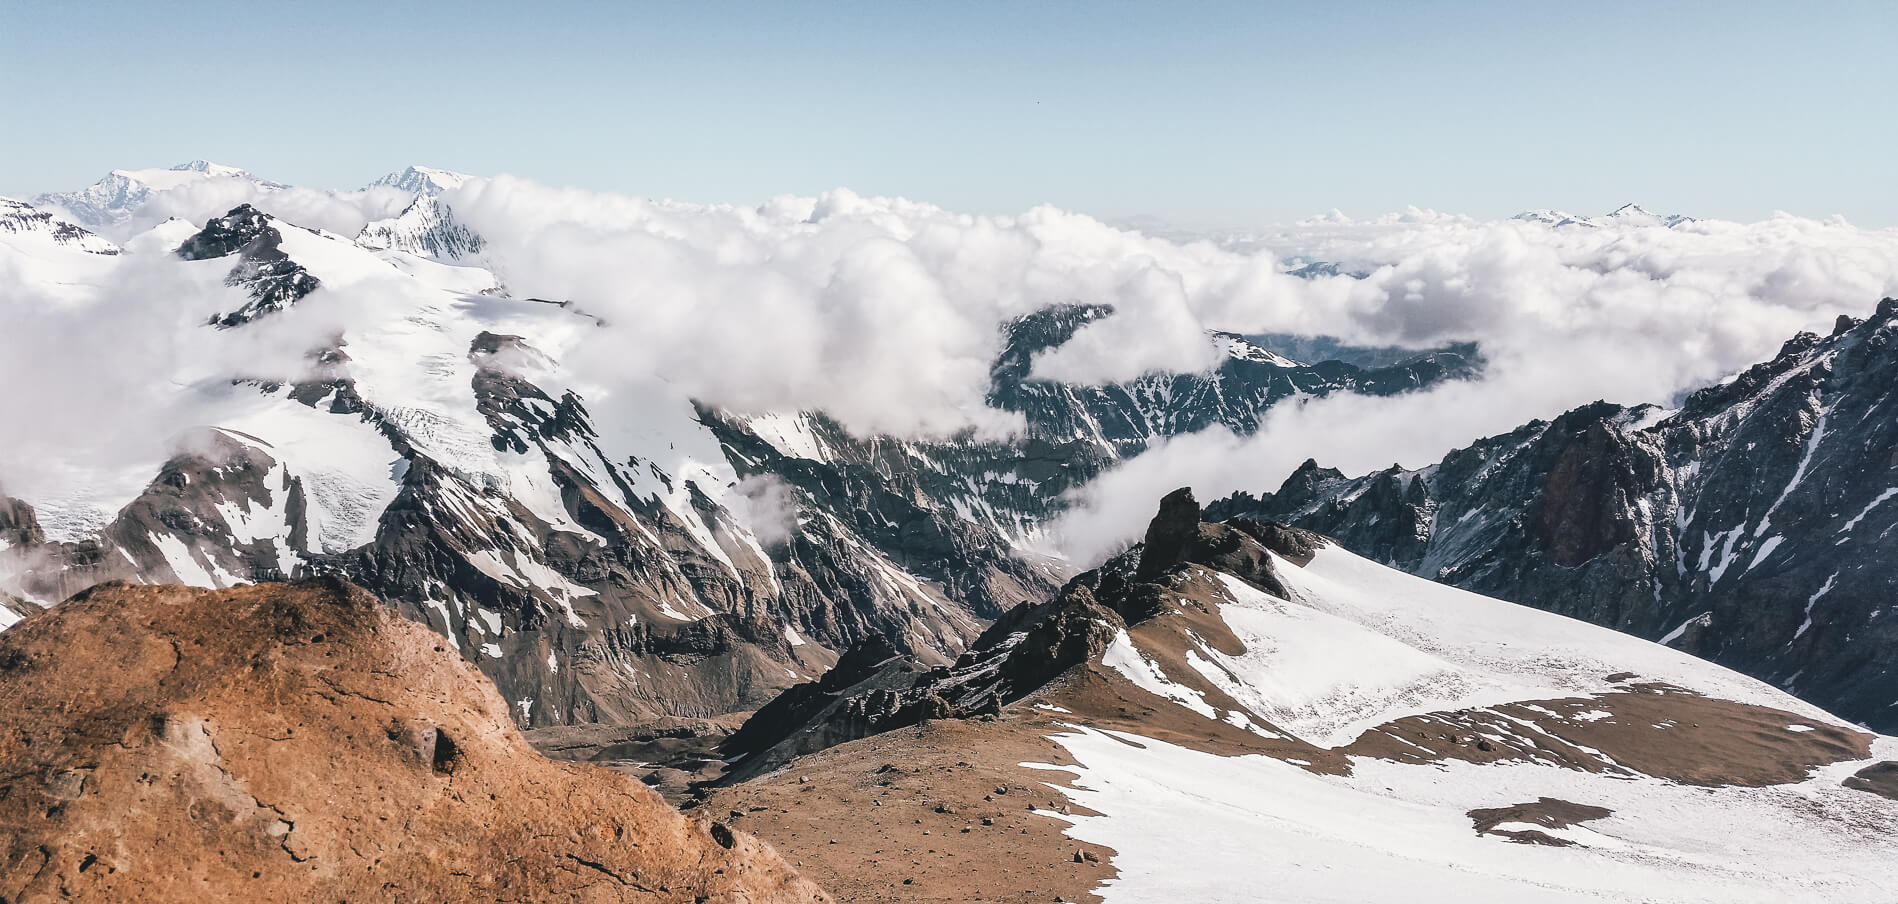 How long does it take to climb Aconcagua